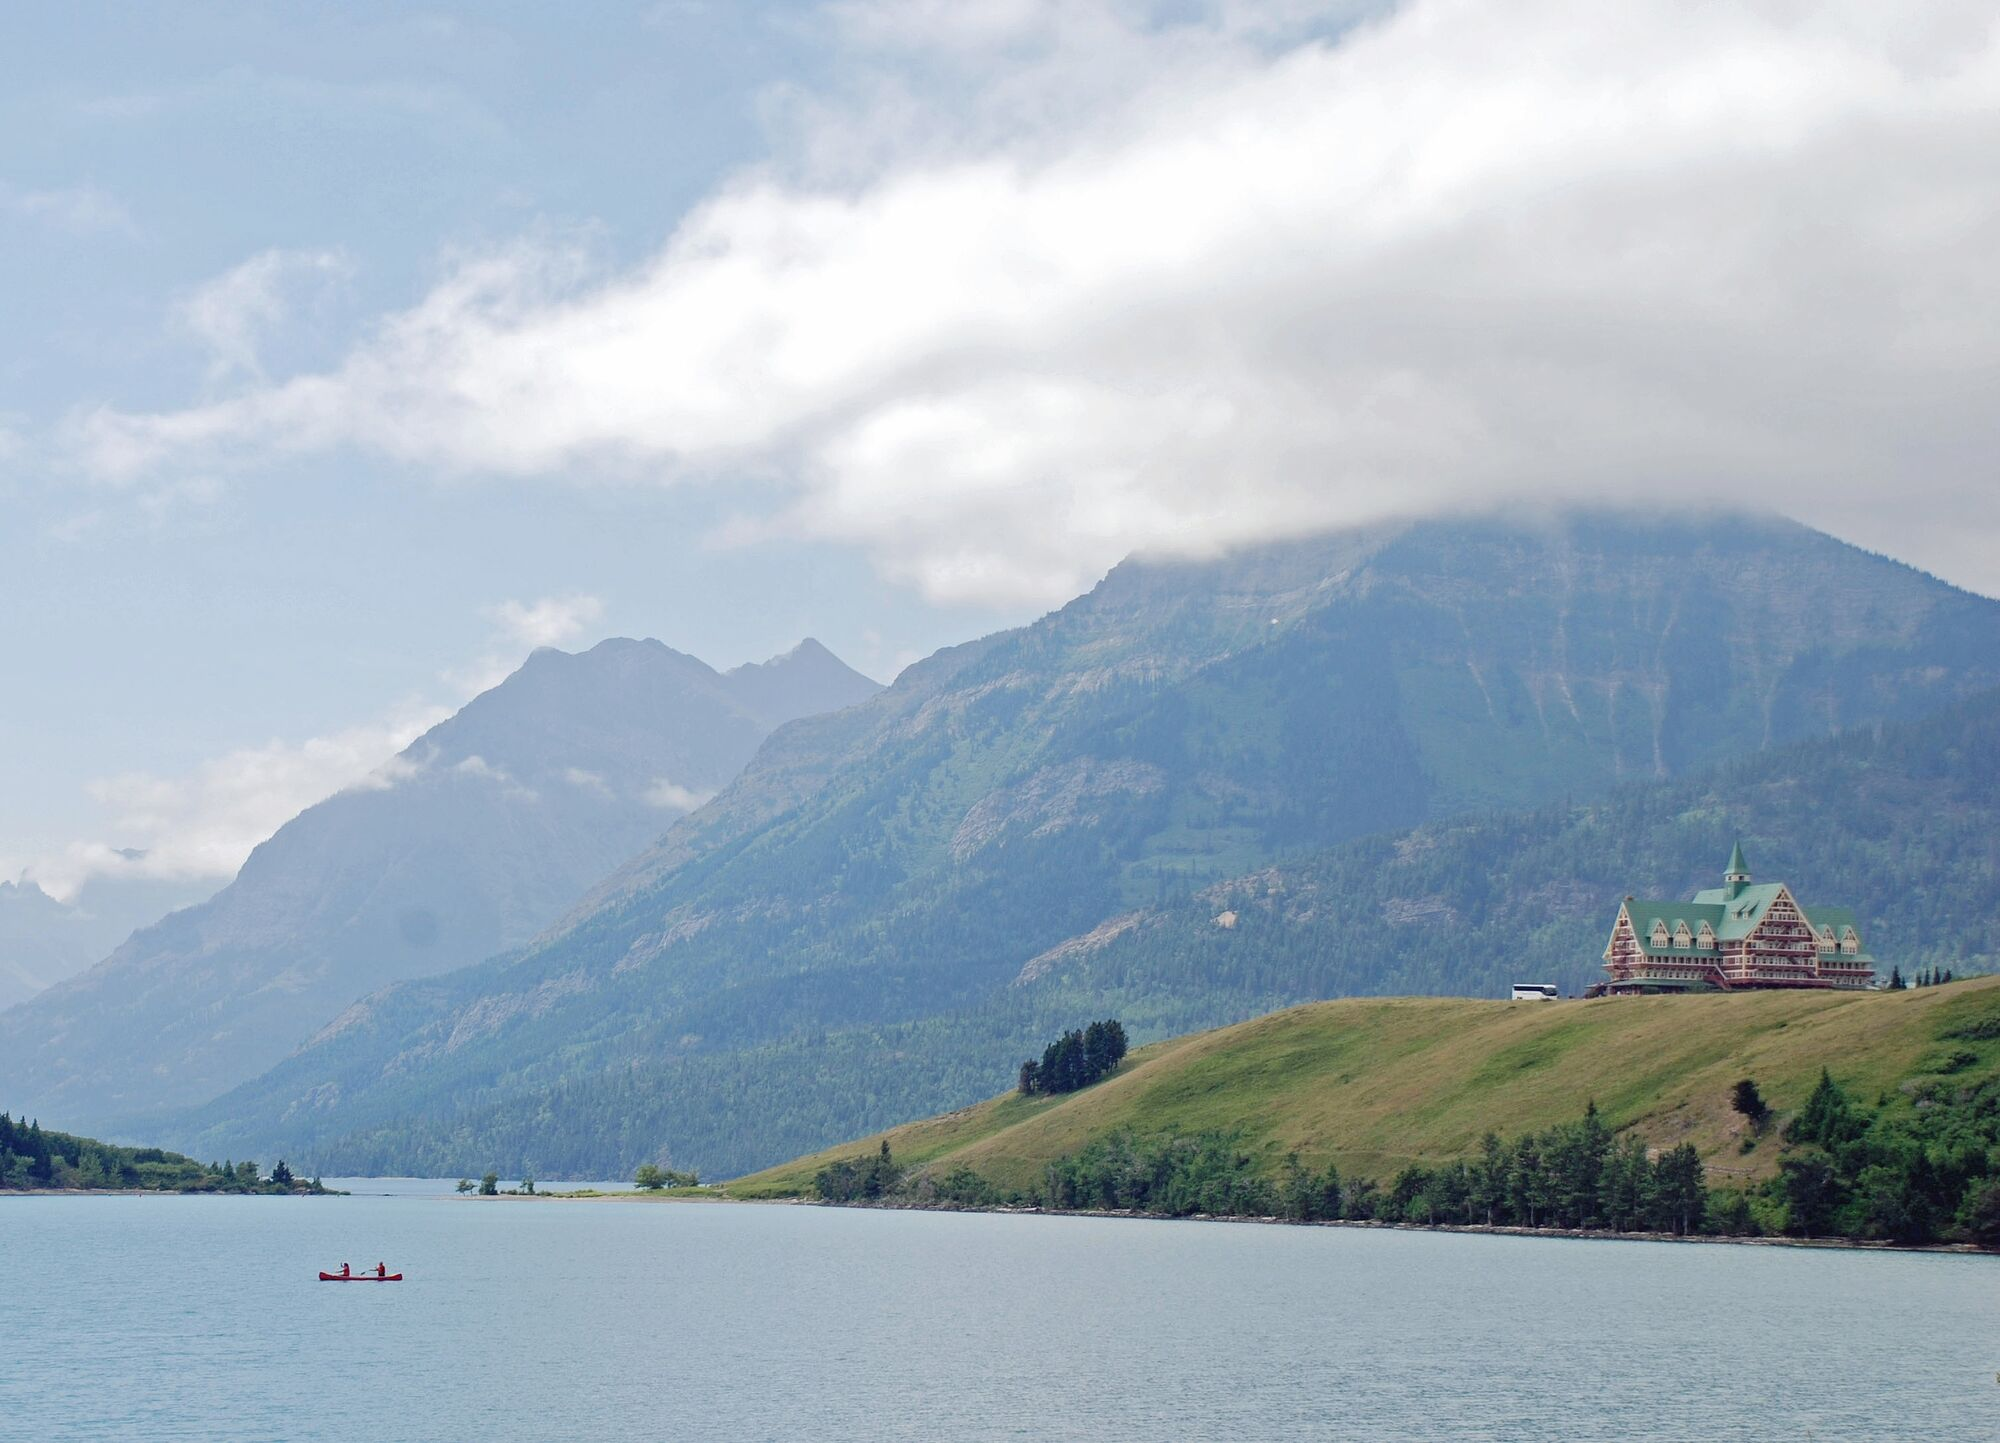 SUPPLIED Waterton park officials have had to turn away visitors this holiday weekend because of high demand.